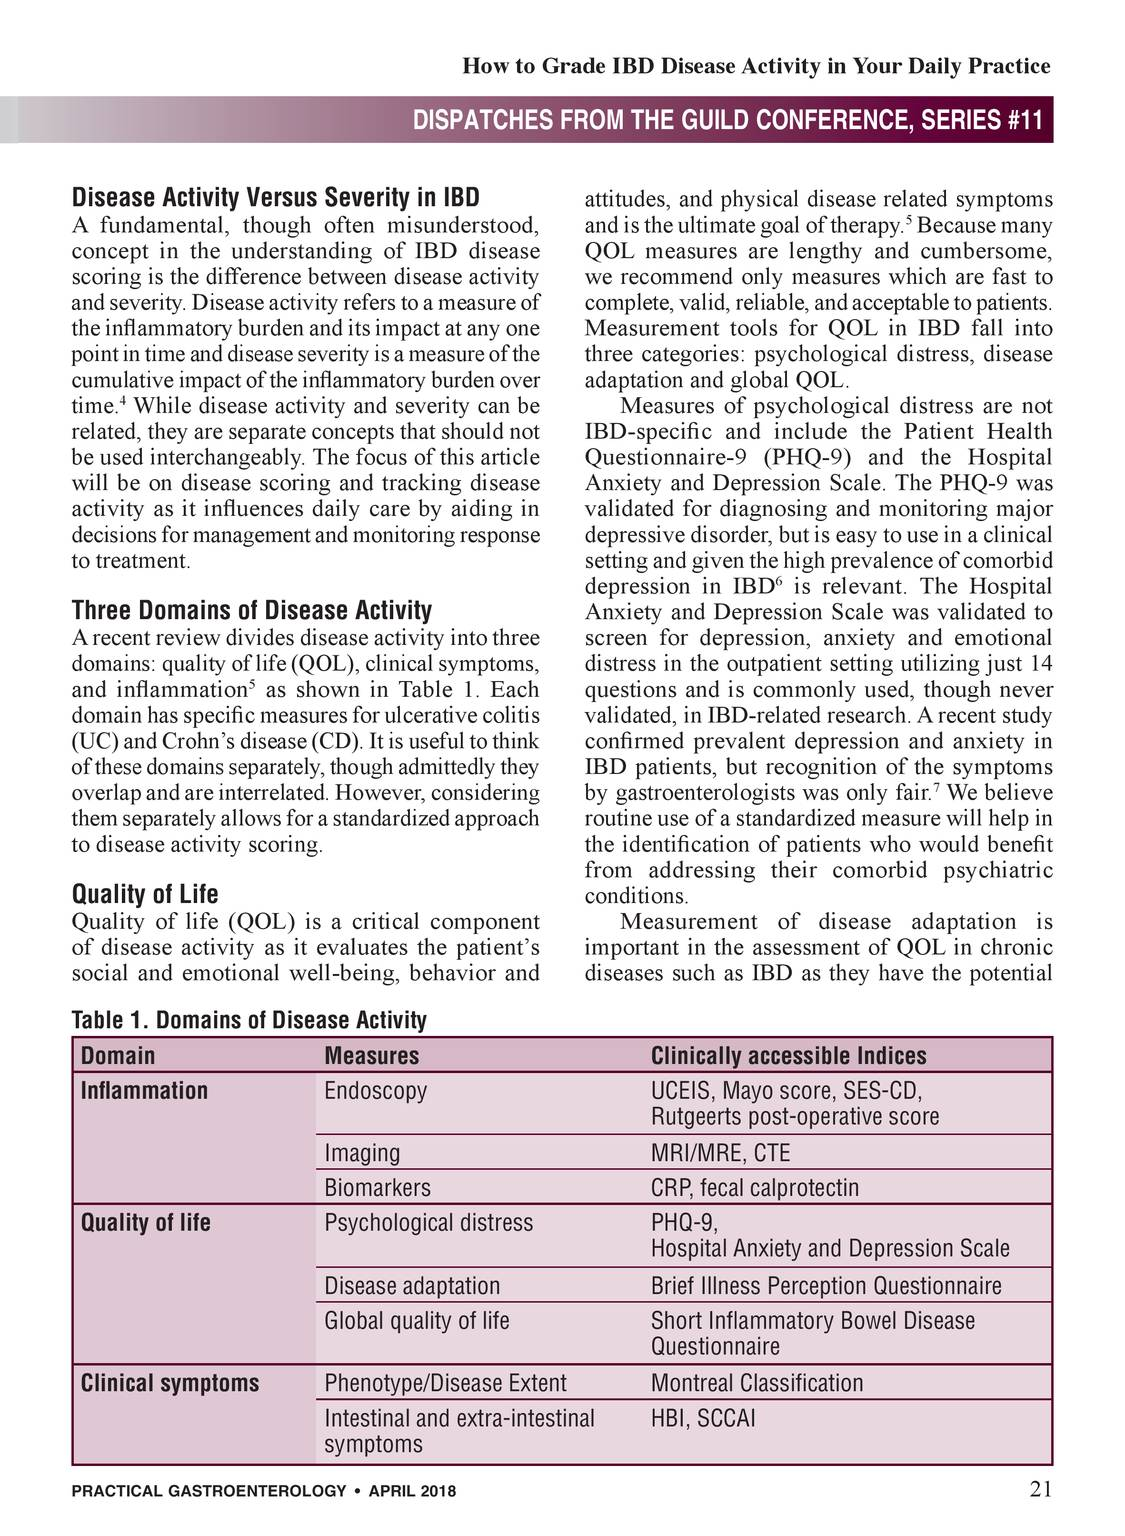 Practical Gastroenterology - April 2018 - page 20